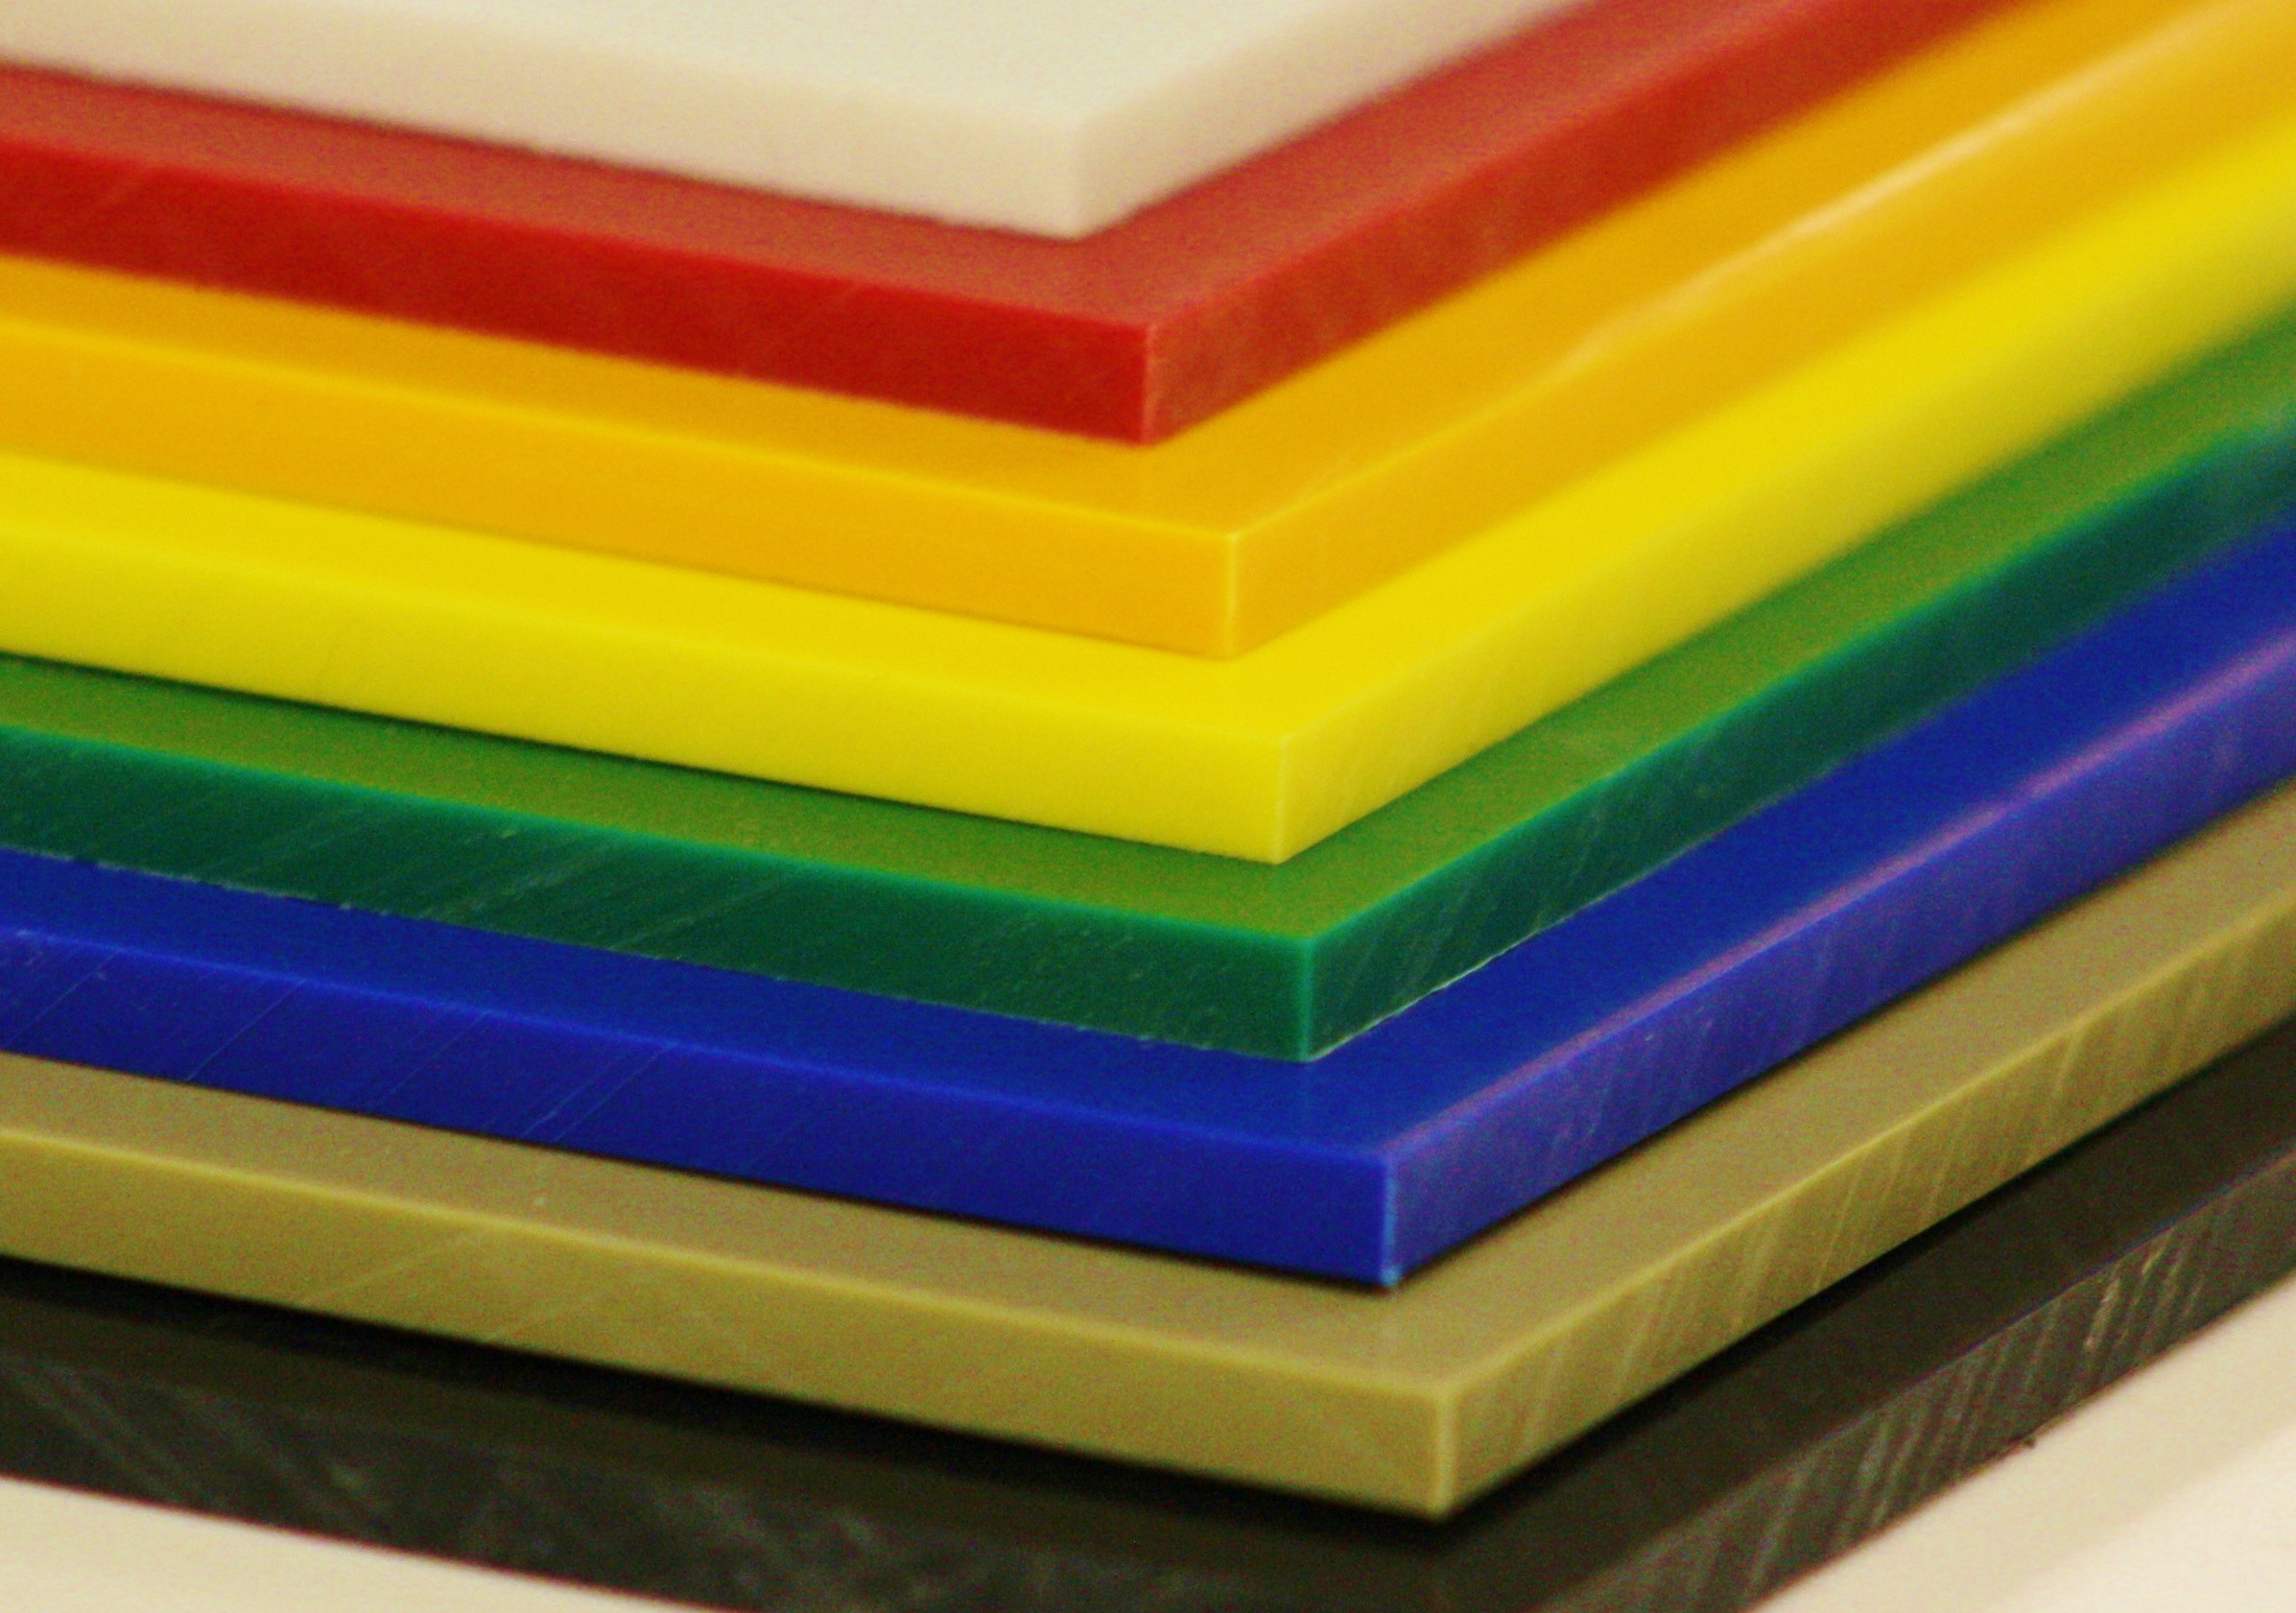 Different colors of HDPE plastic